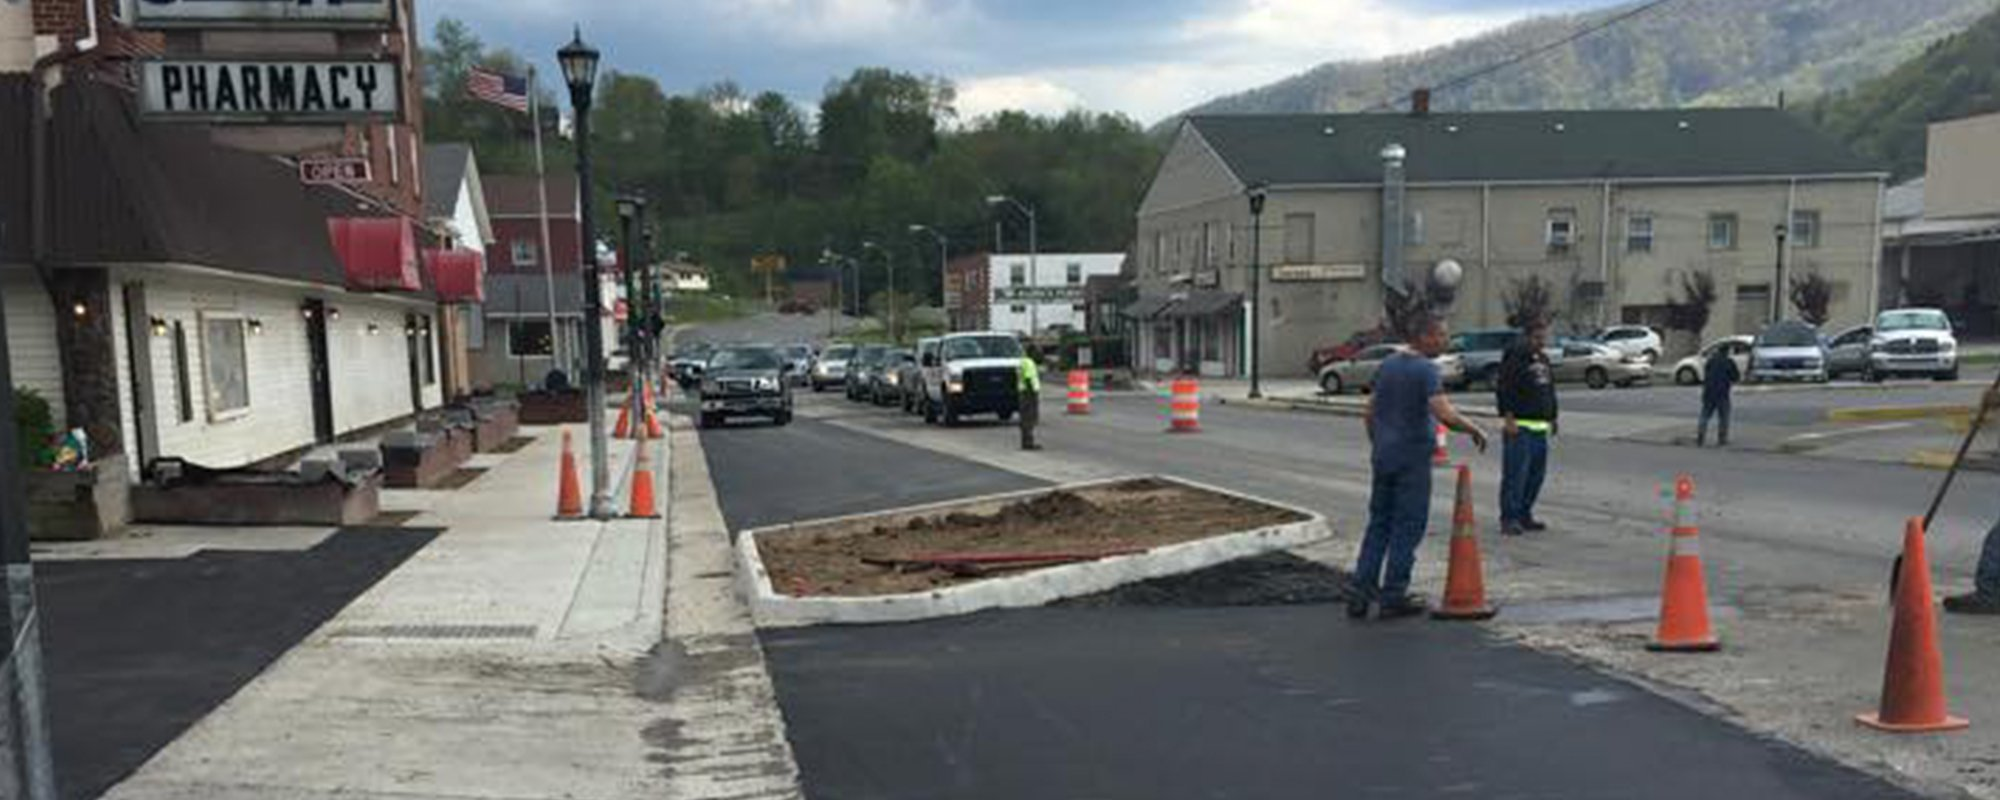 Work in progress for paving of road in Virginia